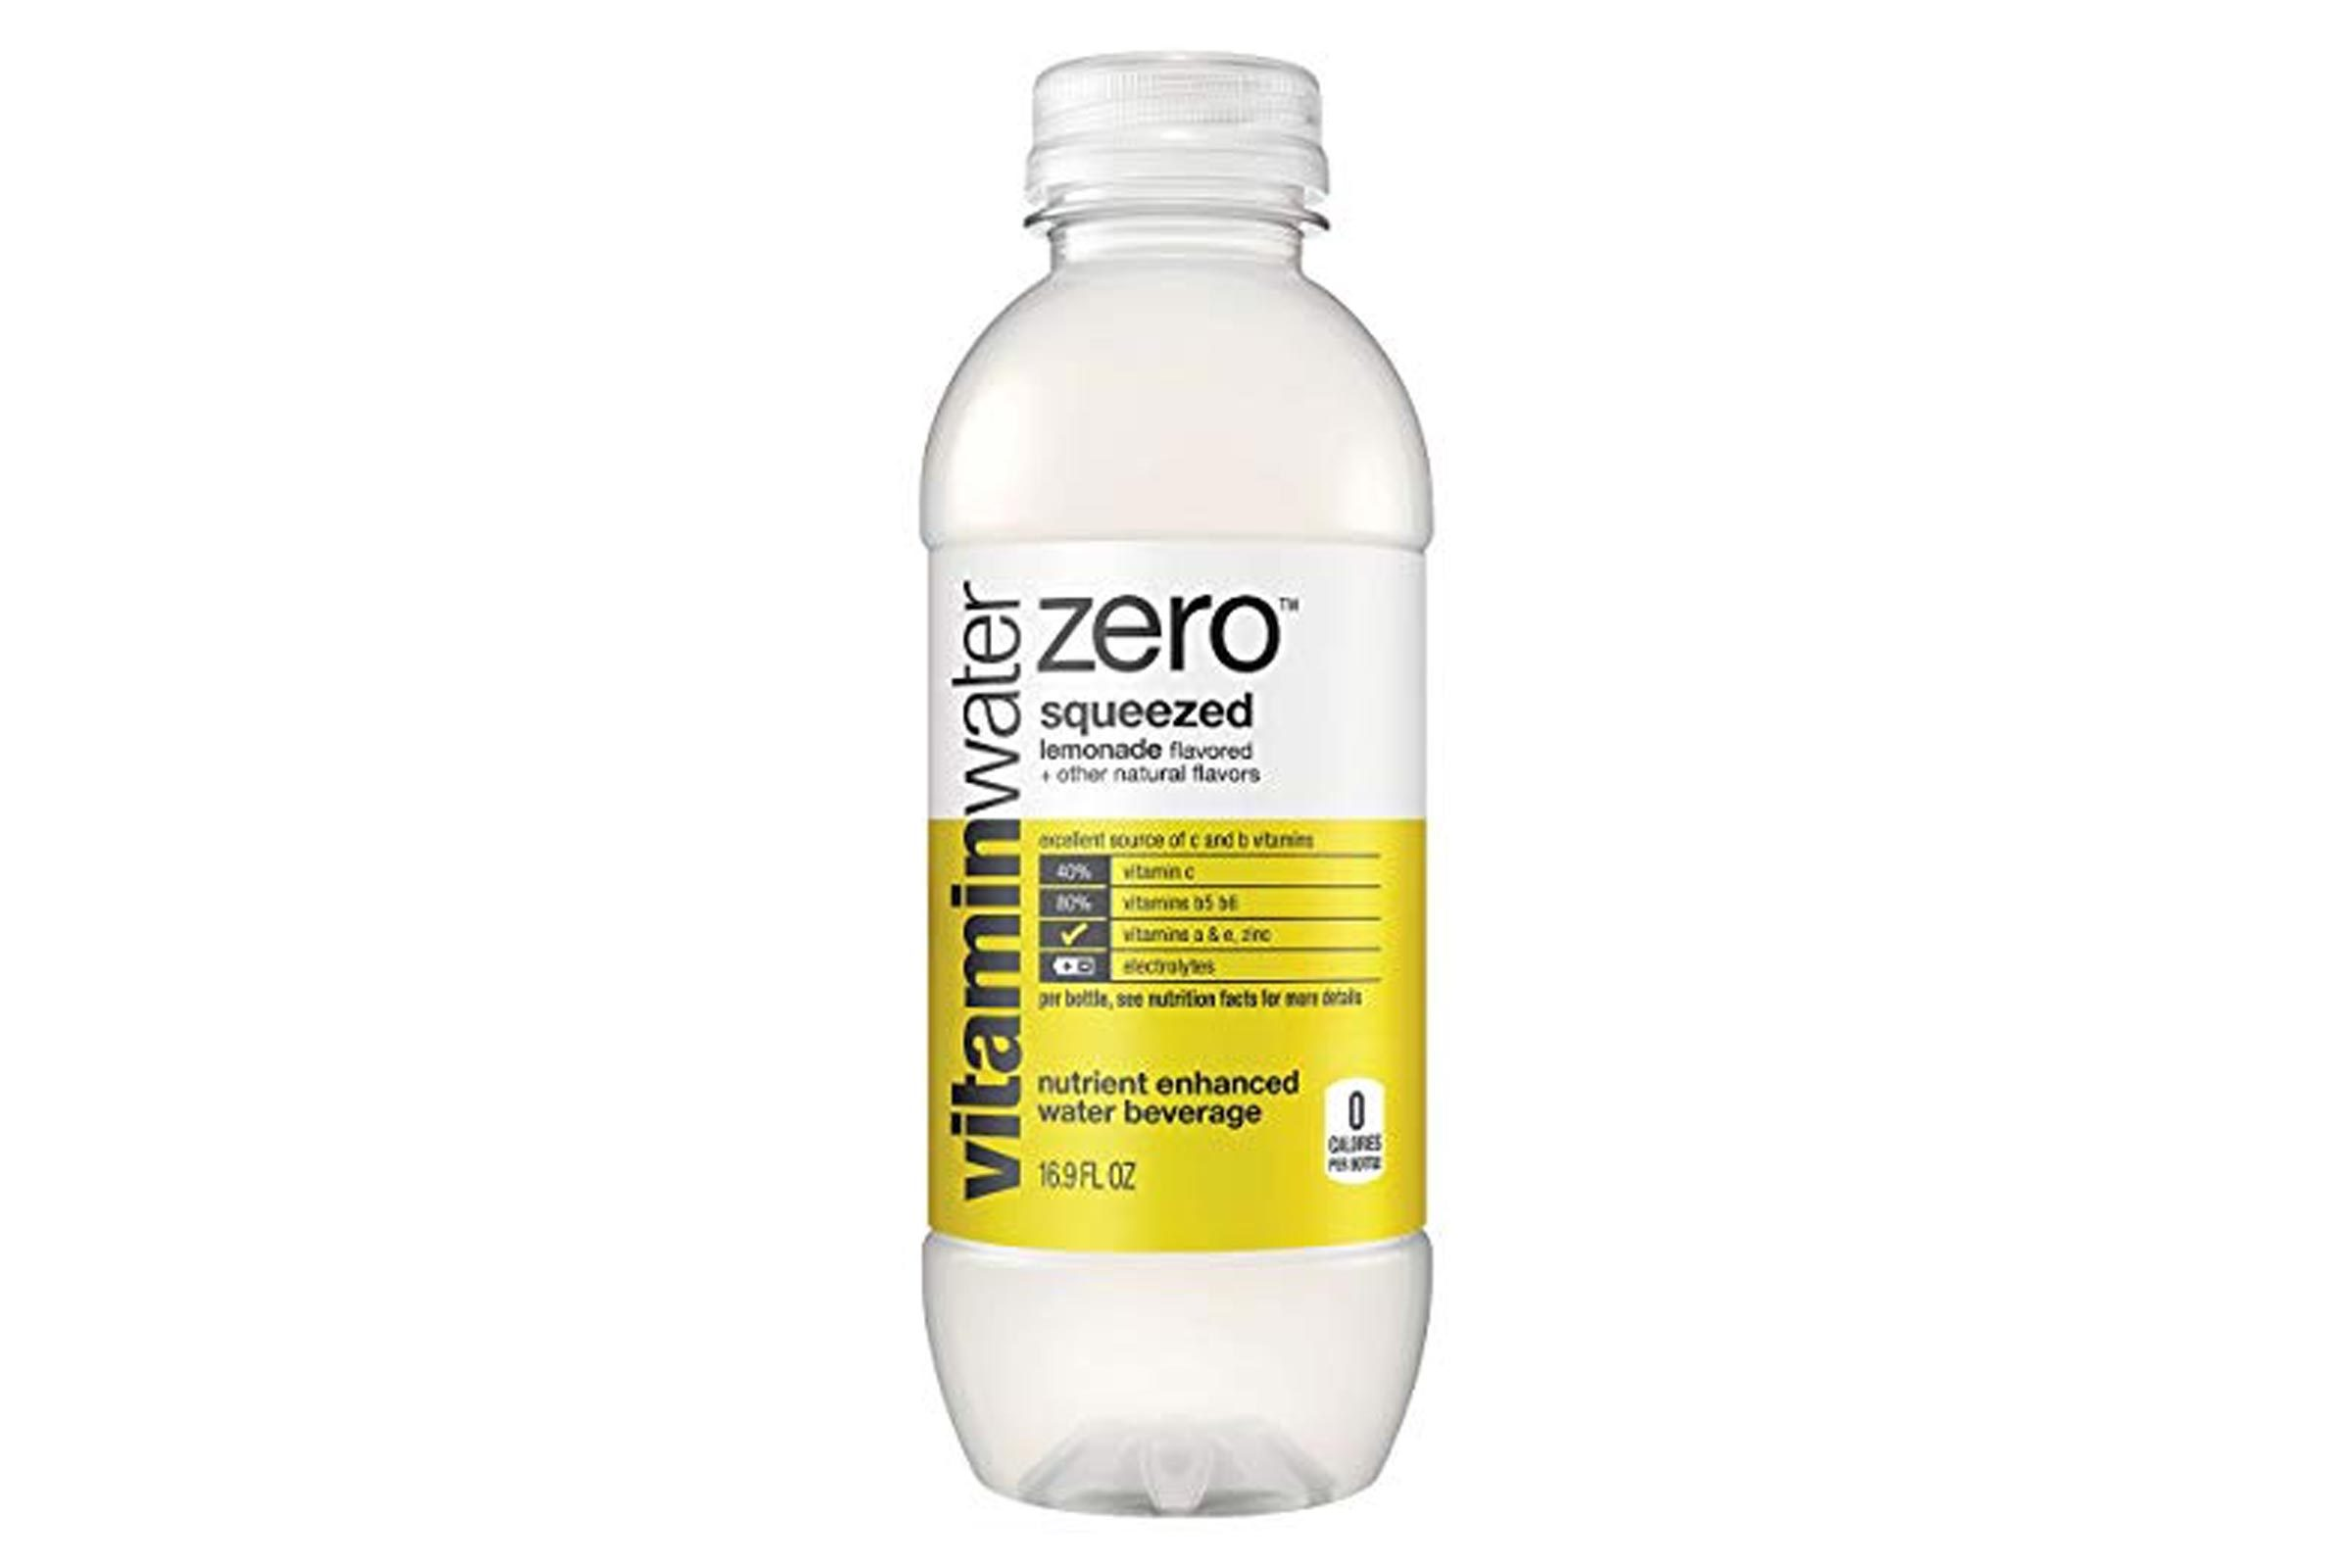 vitaminwater zero squeezed, electrolyte enhanced water w/ vitamins, lemonade drinks, 16.9 fl oz, 6 Pack